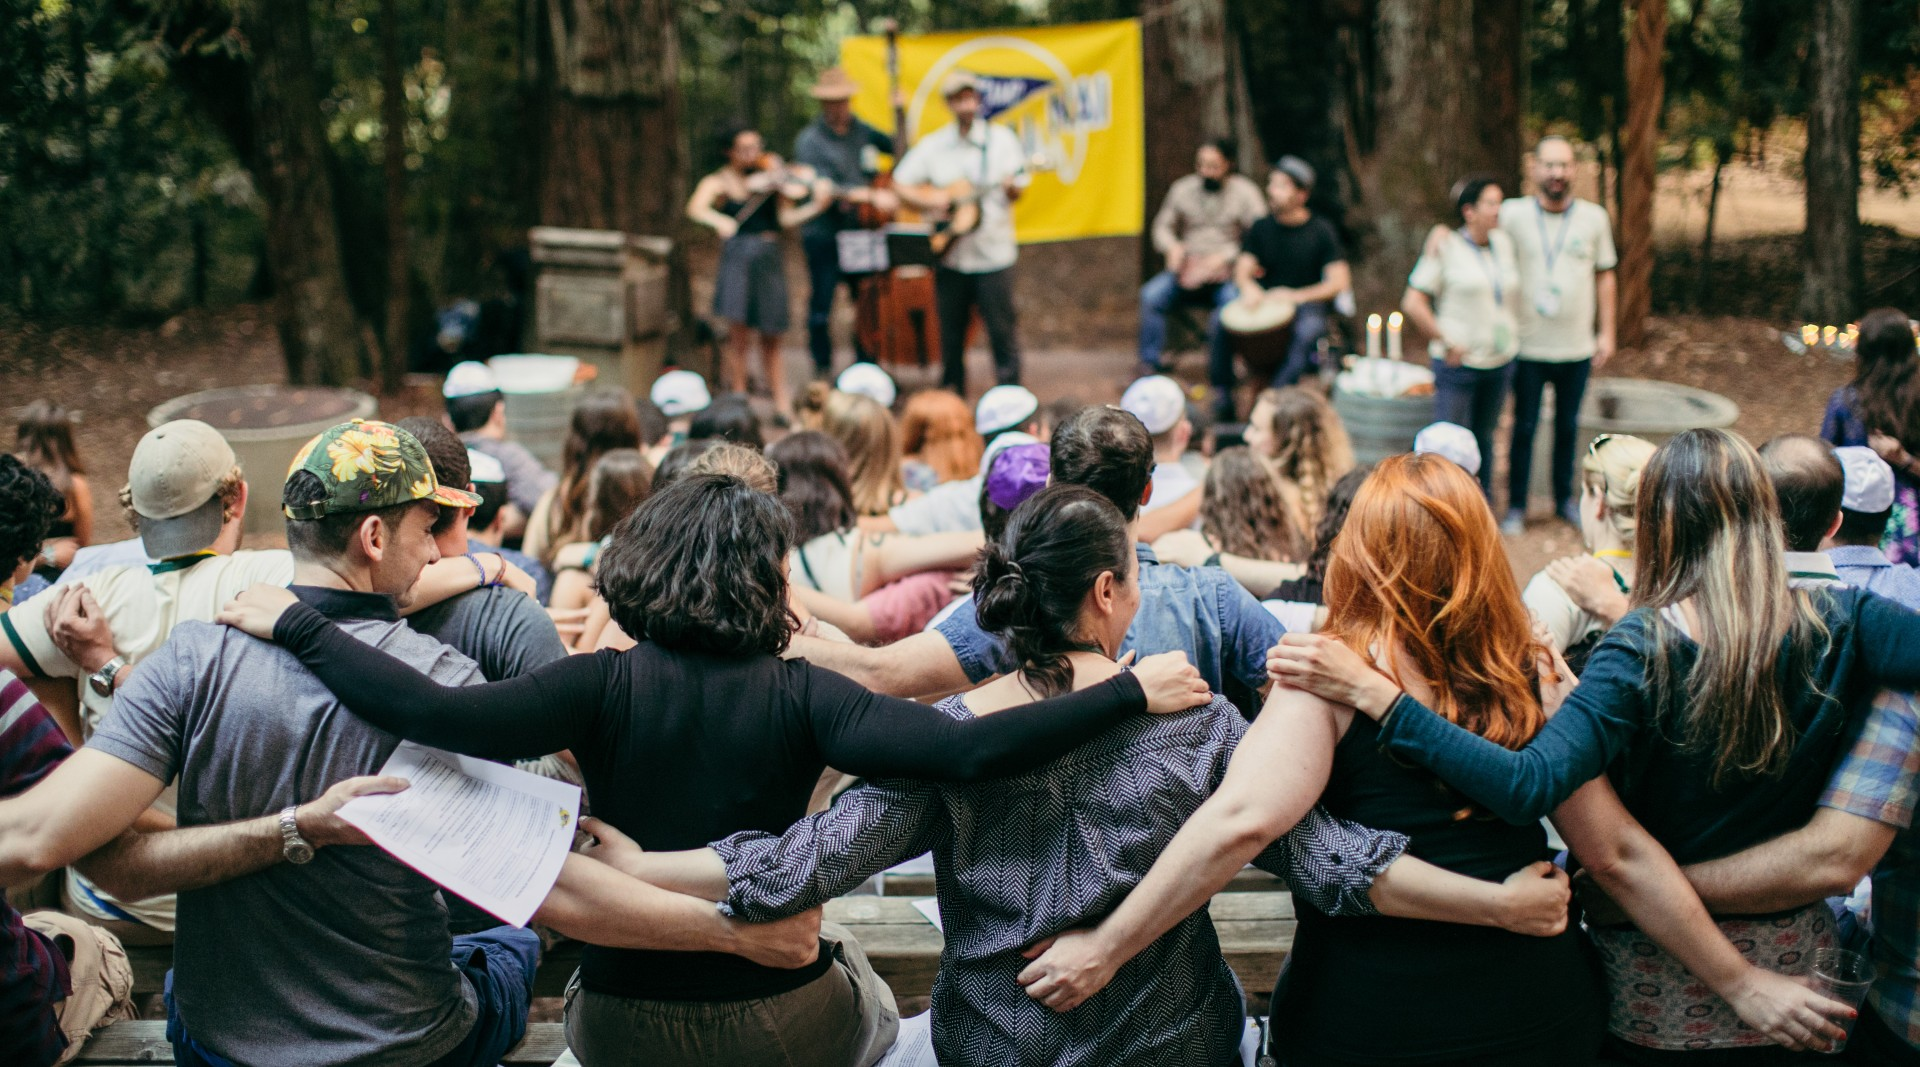 Jewish adult summer camp is back! Weekend getaway for Jews in 20s and 30s already...